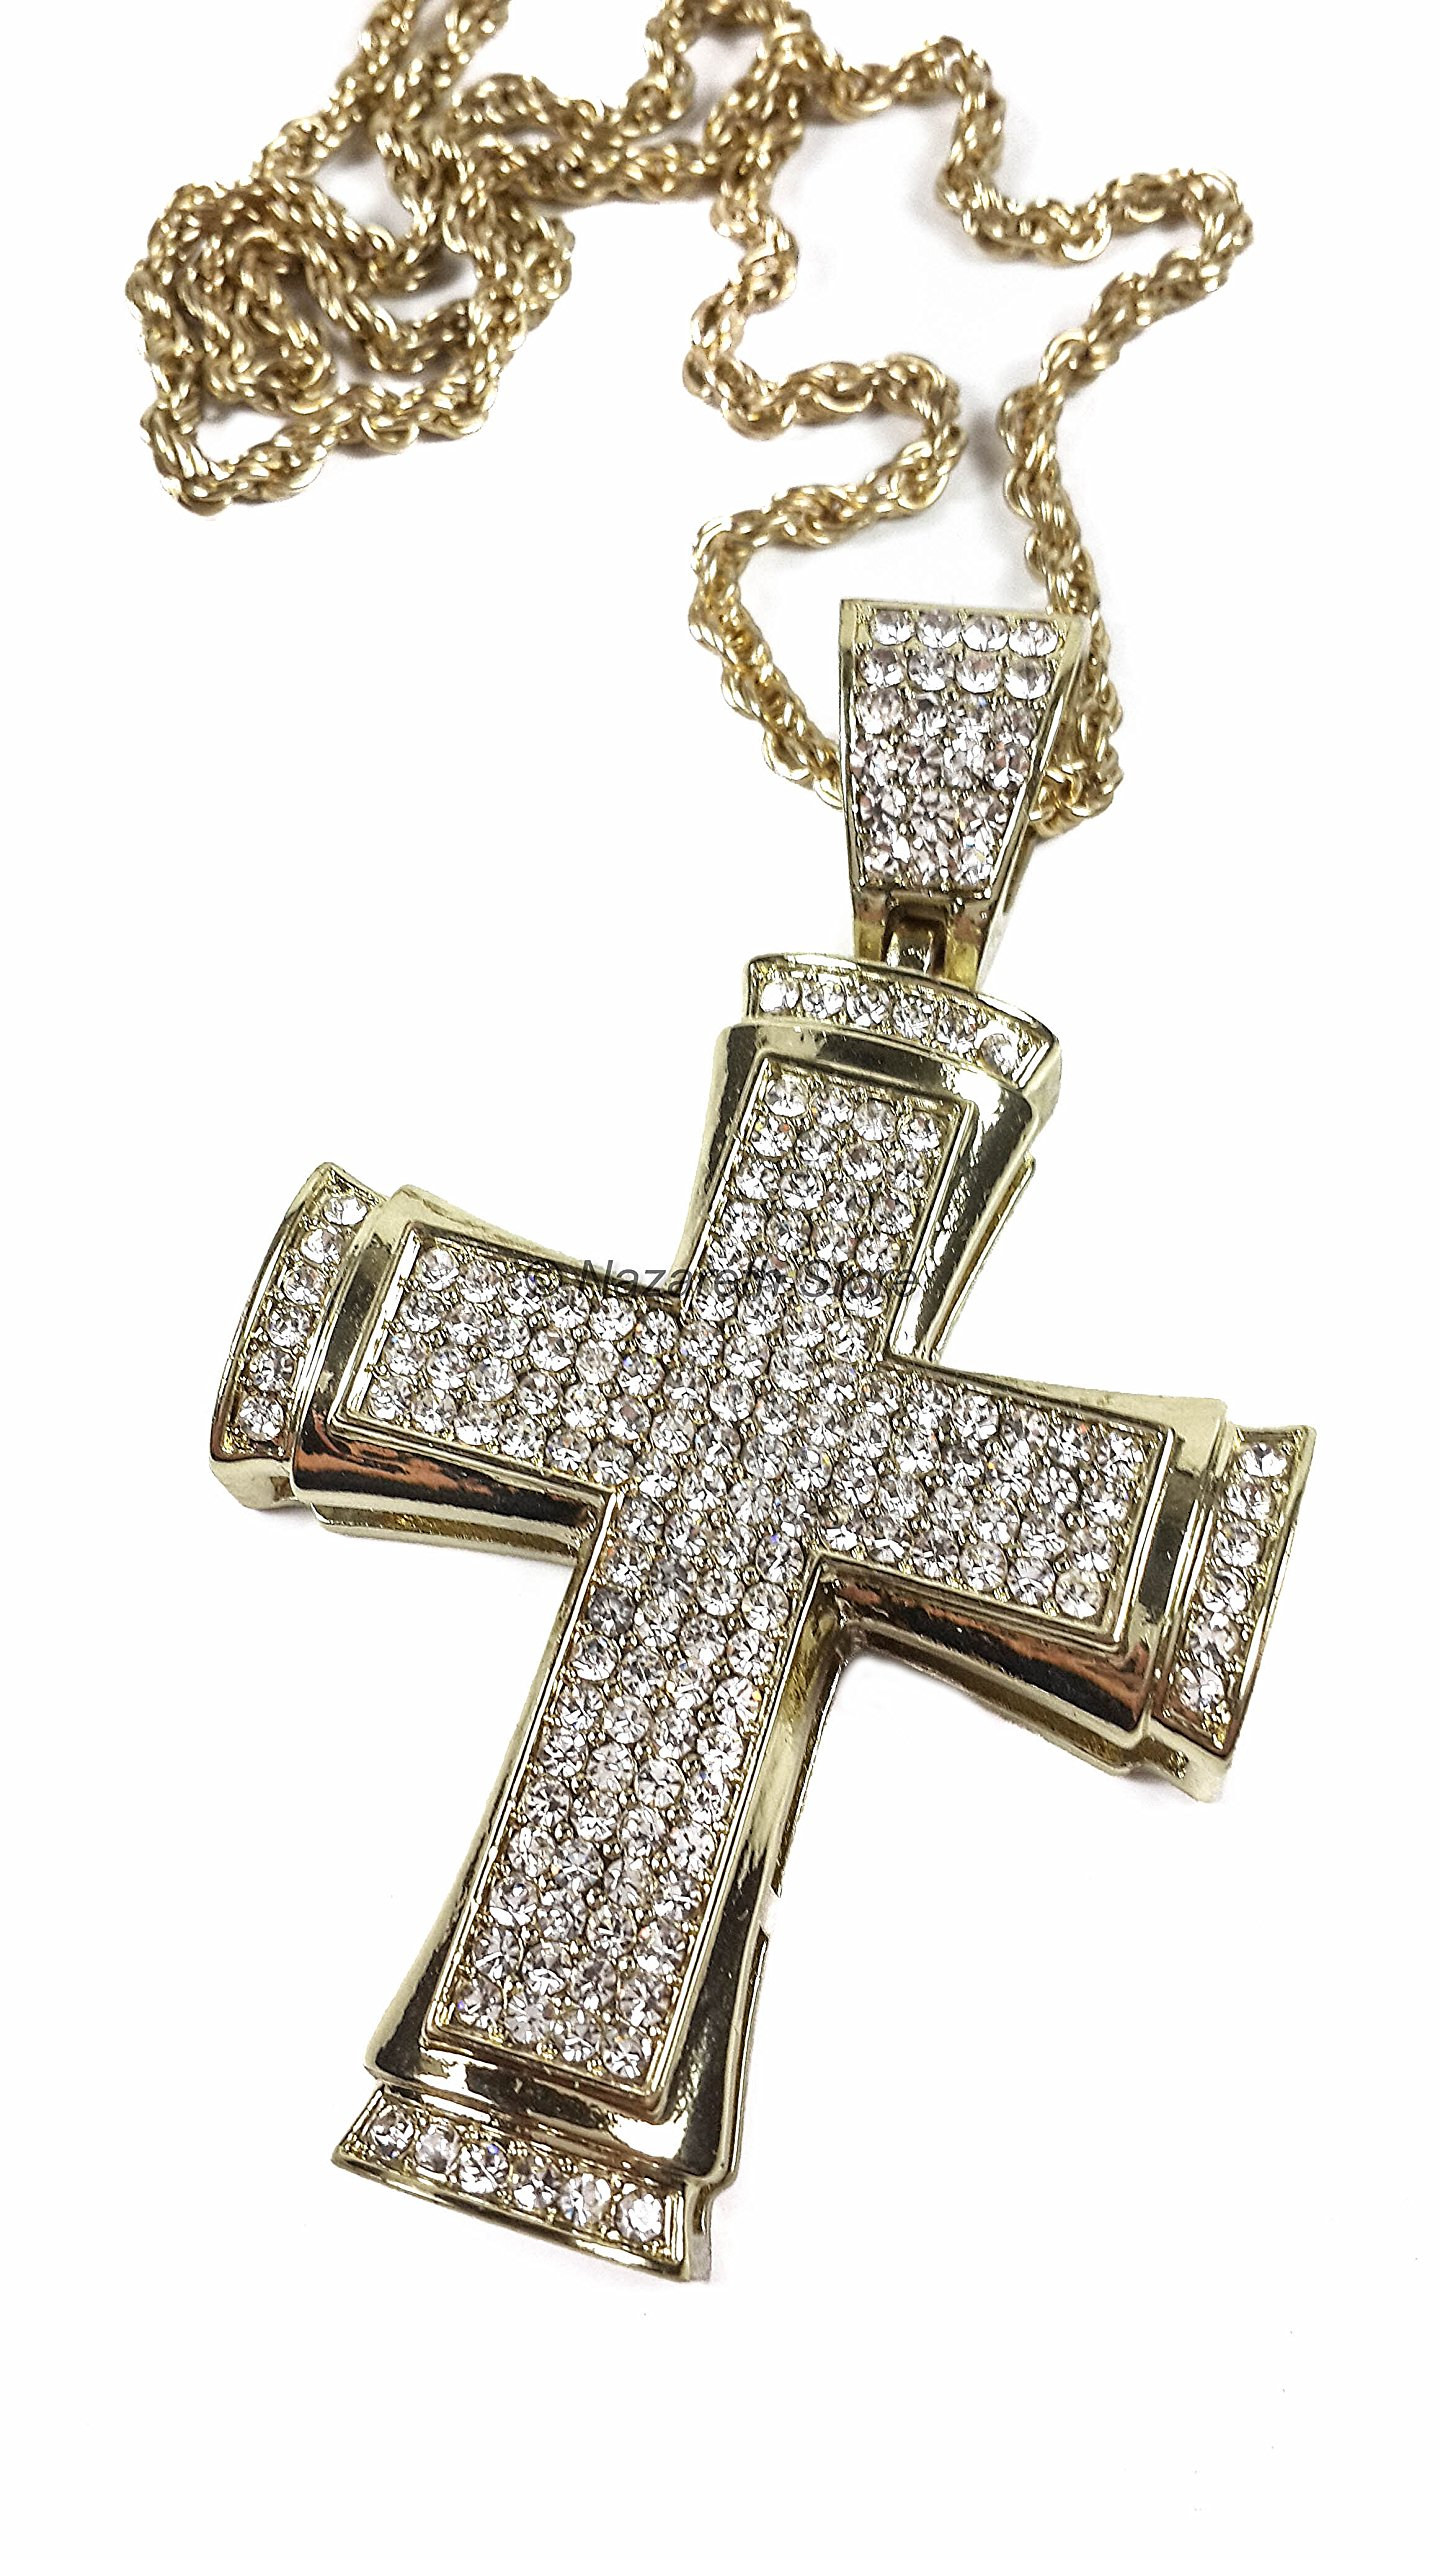 Golden Pectoral Cross Zircons Crystallized Elements Christian Catholic Crucifix